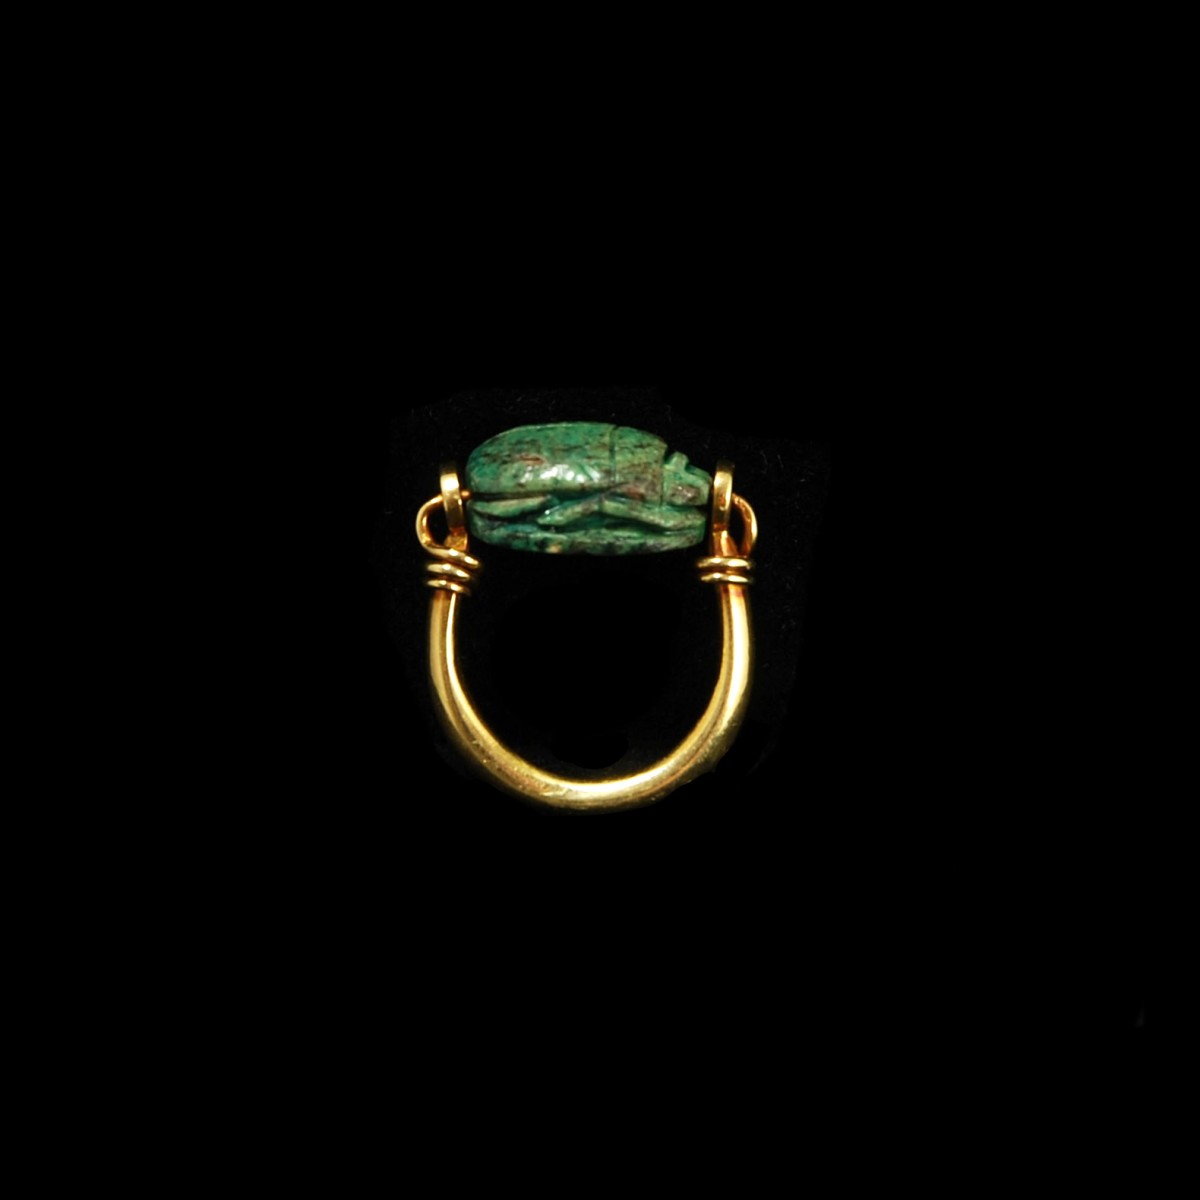 Egyptian Goldring with scarab side